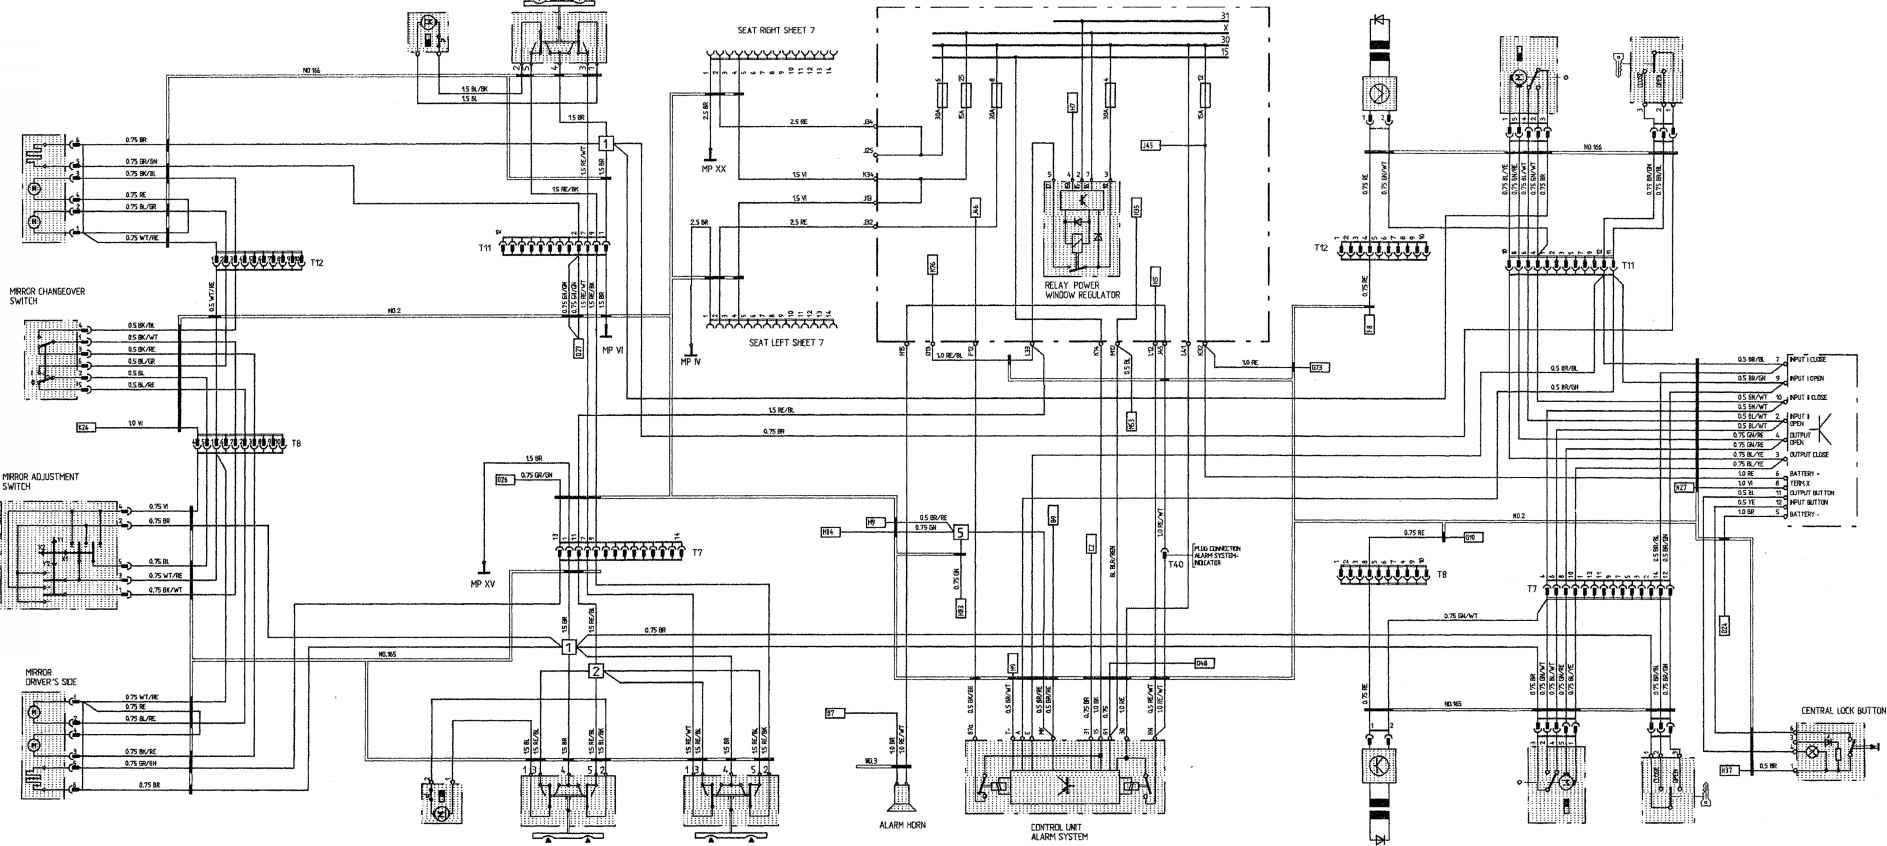 Wiring Diagram For 2008 Polaris Sportsman 500